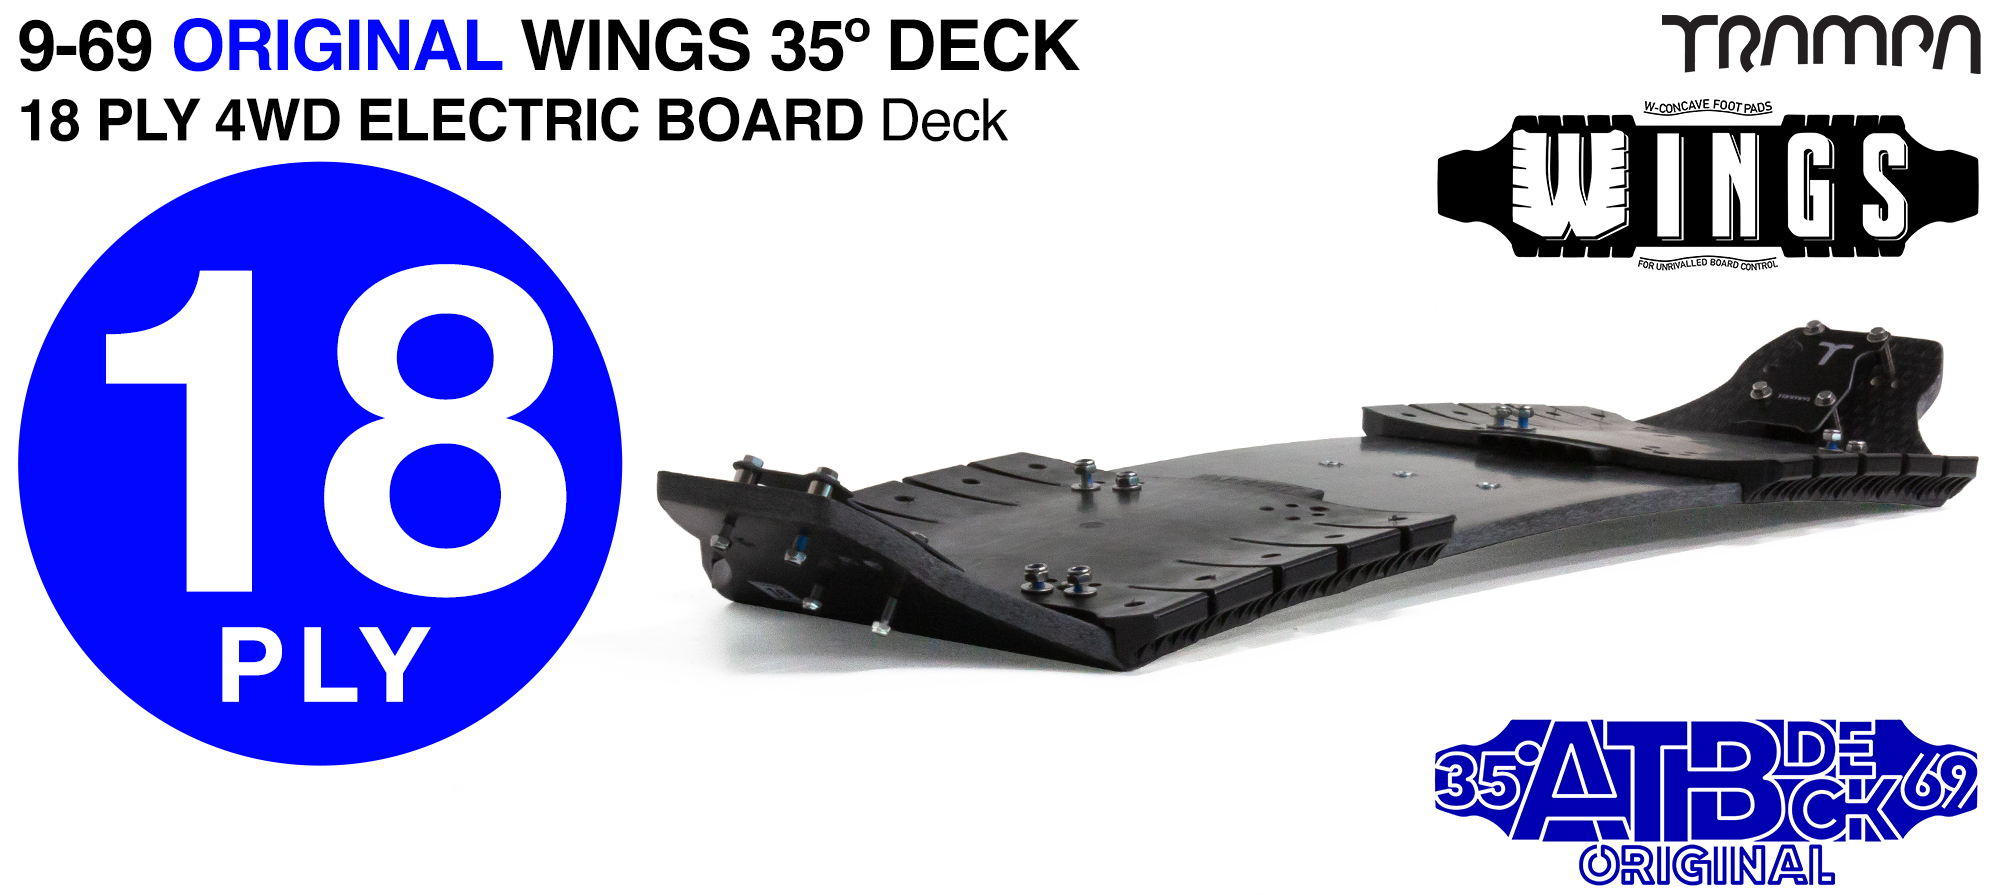 35° 9/69 TRAMPA 4WD-E WING Deck - Fix the WINGS to the deck to add W-Shape concave & the increase the width of the Deck - 18ply